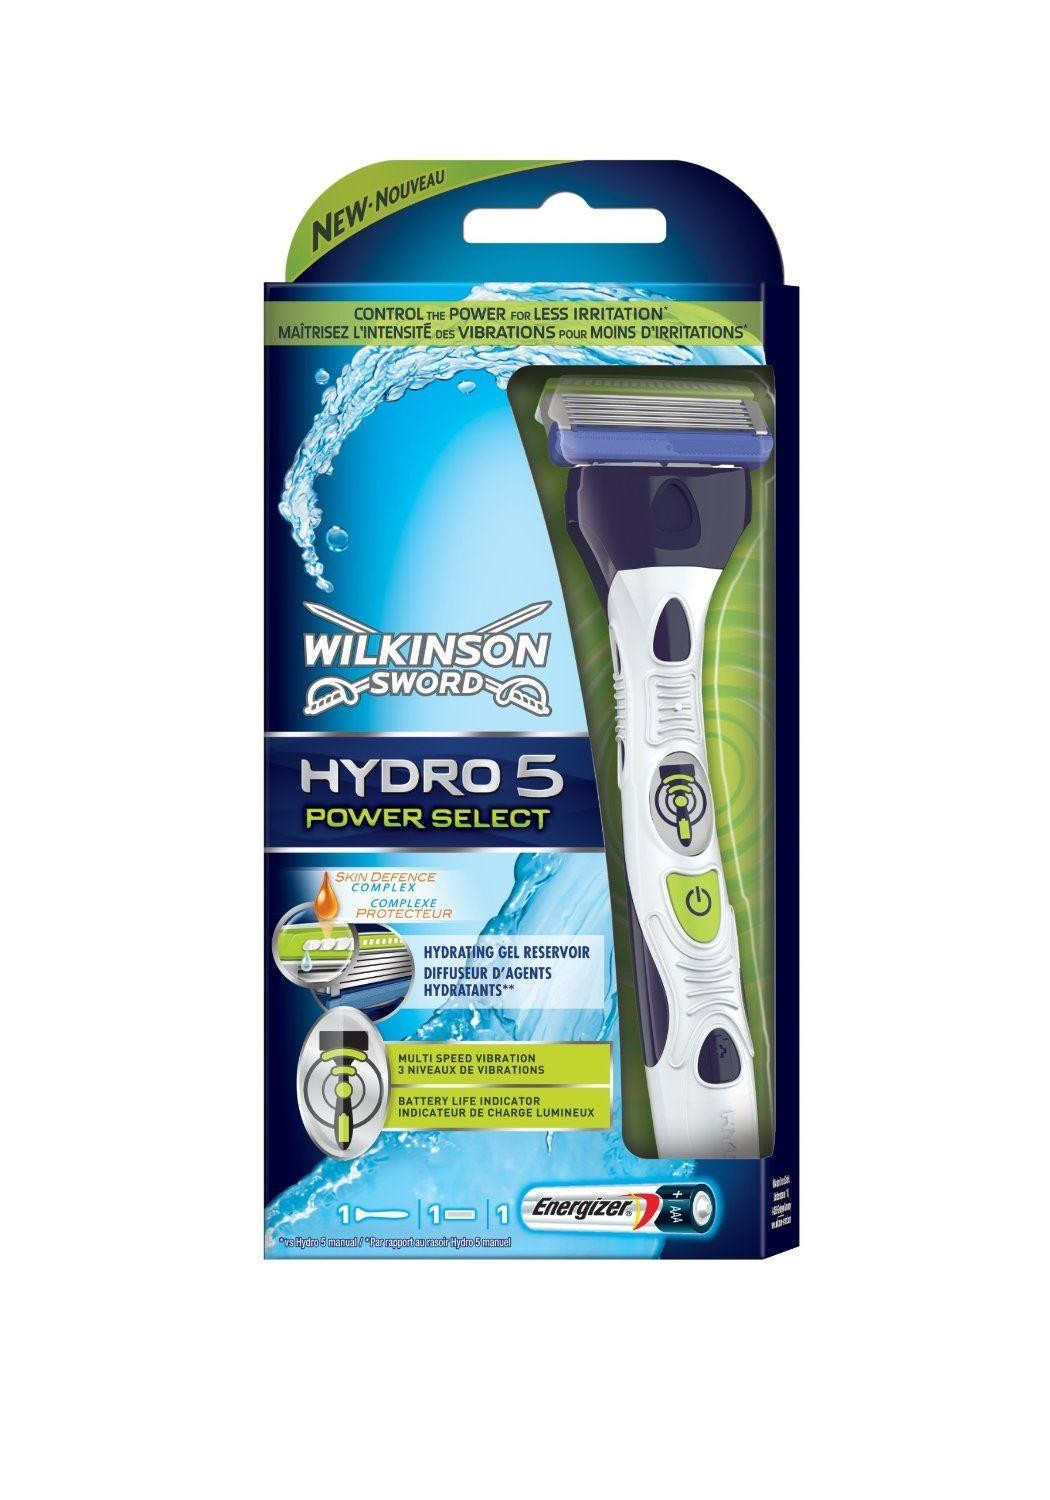 Wilkinson Sword Hydro 5 Power Select Razor [Personal Care]